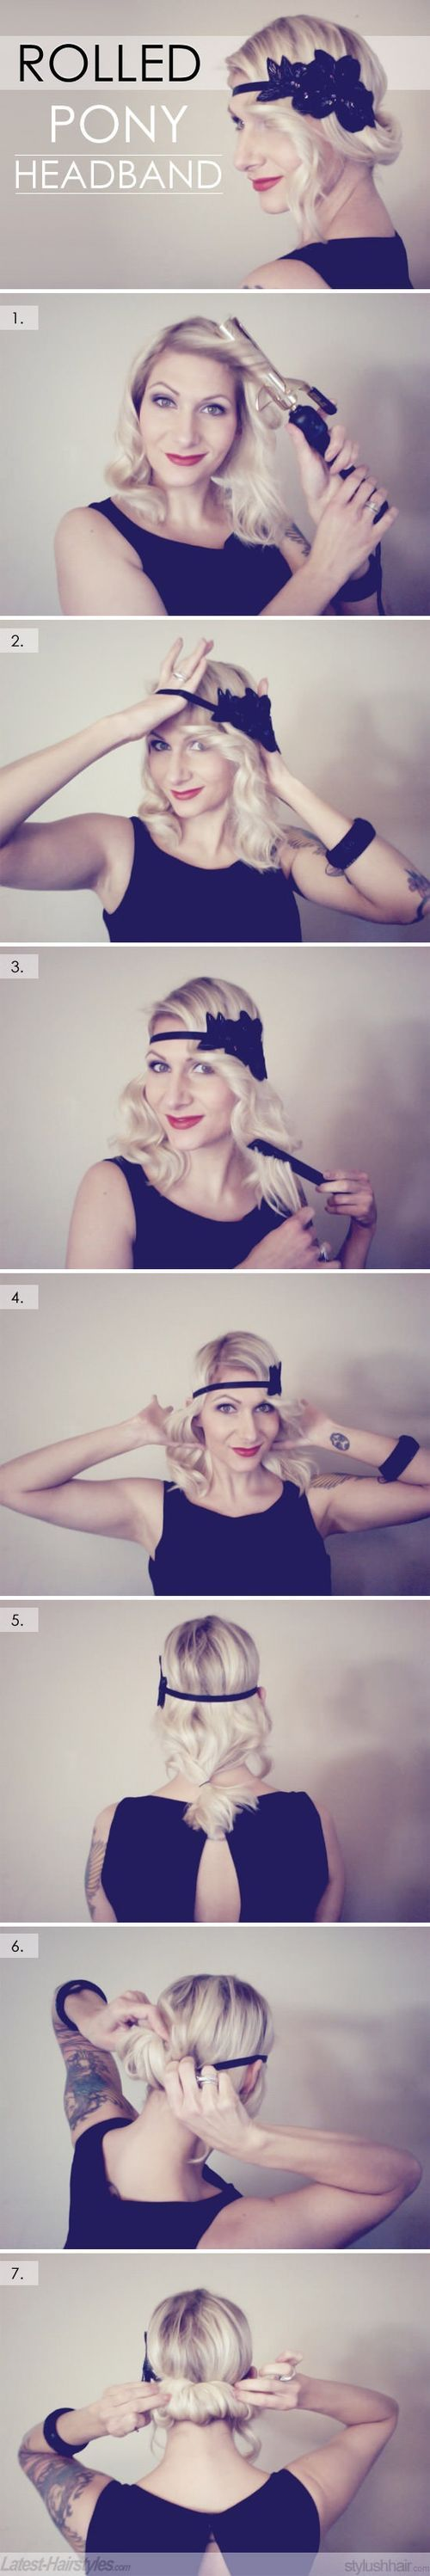 DIY Rolled Ponytail Headband Hairstyle Do It Yourself Fashion Tips / DIY Fashion Projects on imgfave